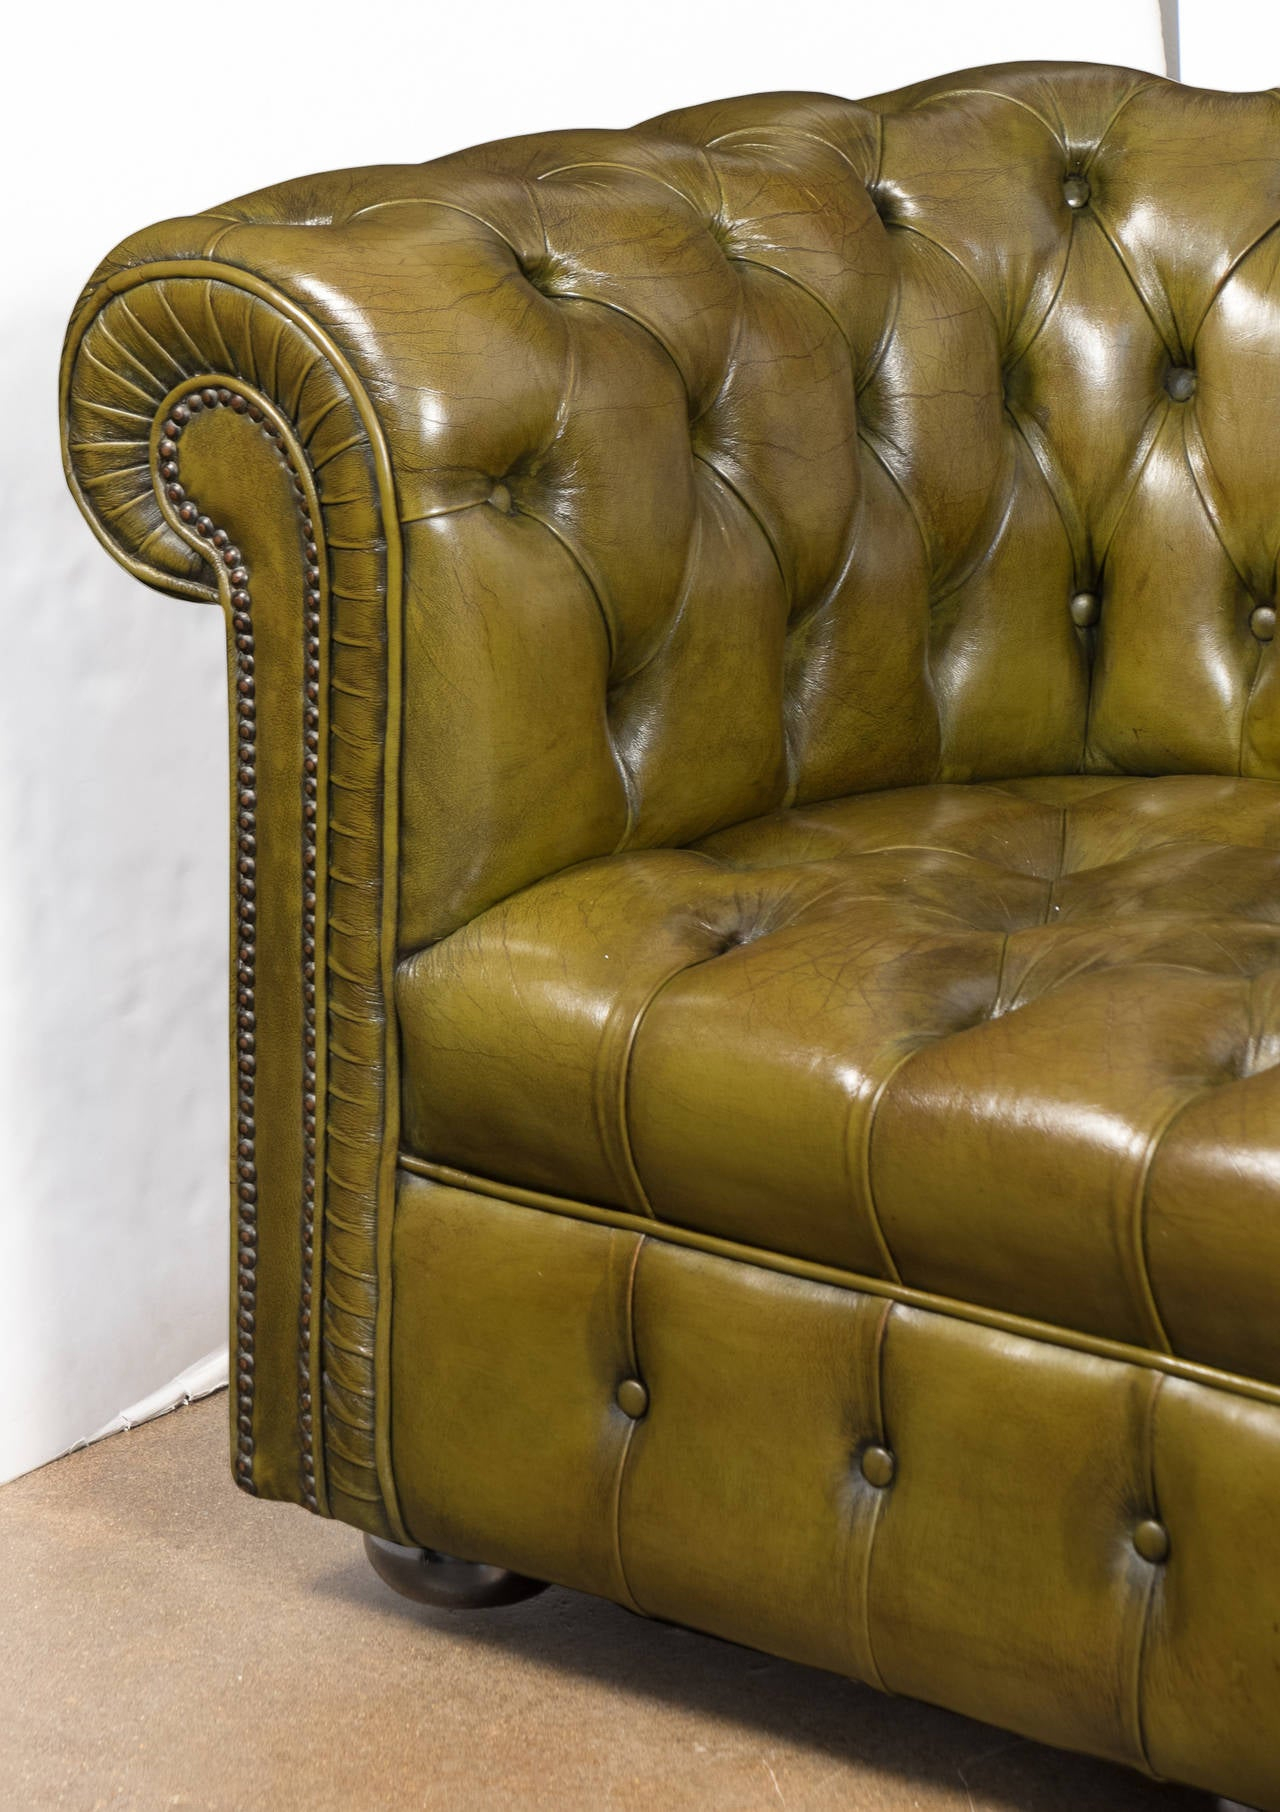 Vintage Green Leather Chesterfield Sofa At 1Stdibs Regarding Leather Chesterfield Sofas (View 7 of 15)